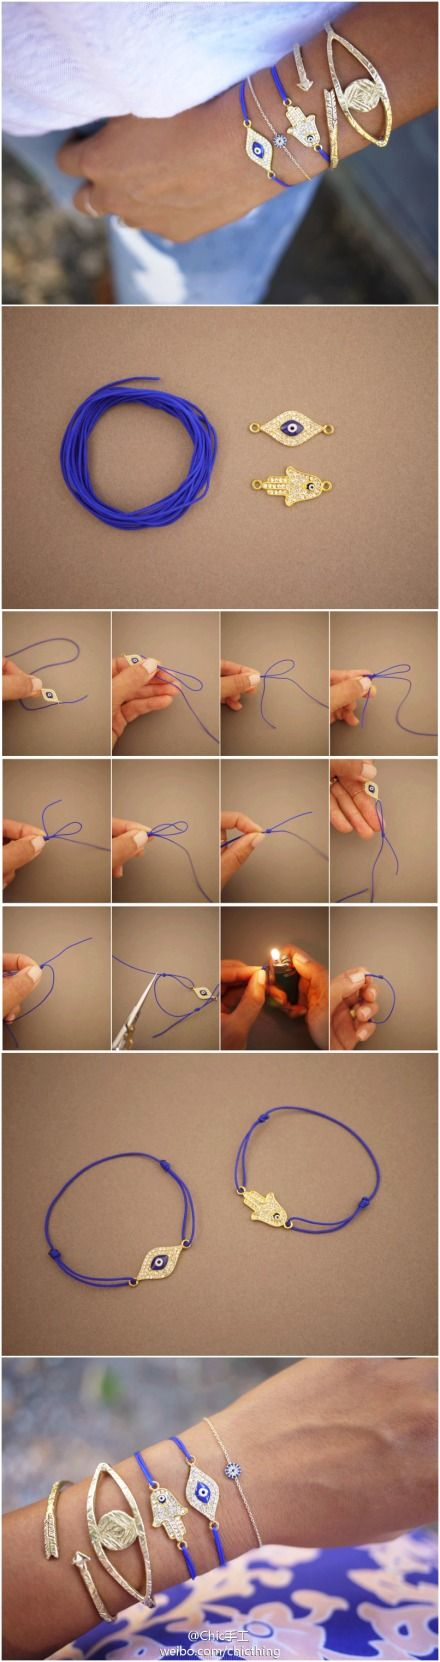 Chic handmade: a nice # chic accessories # accessories a simple rubber rope